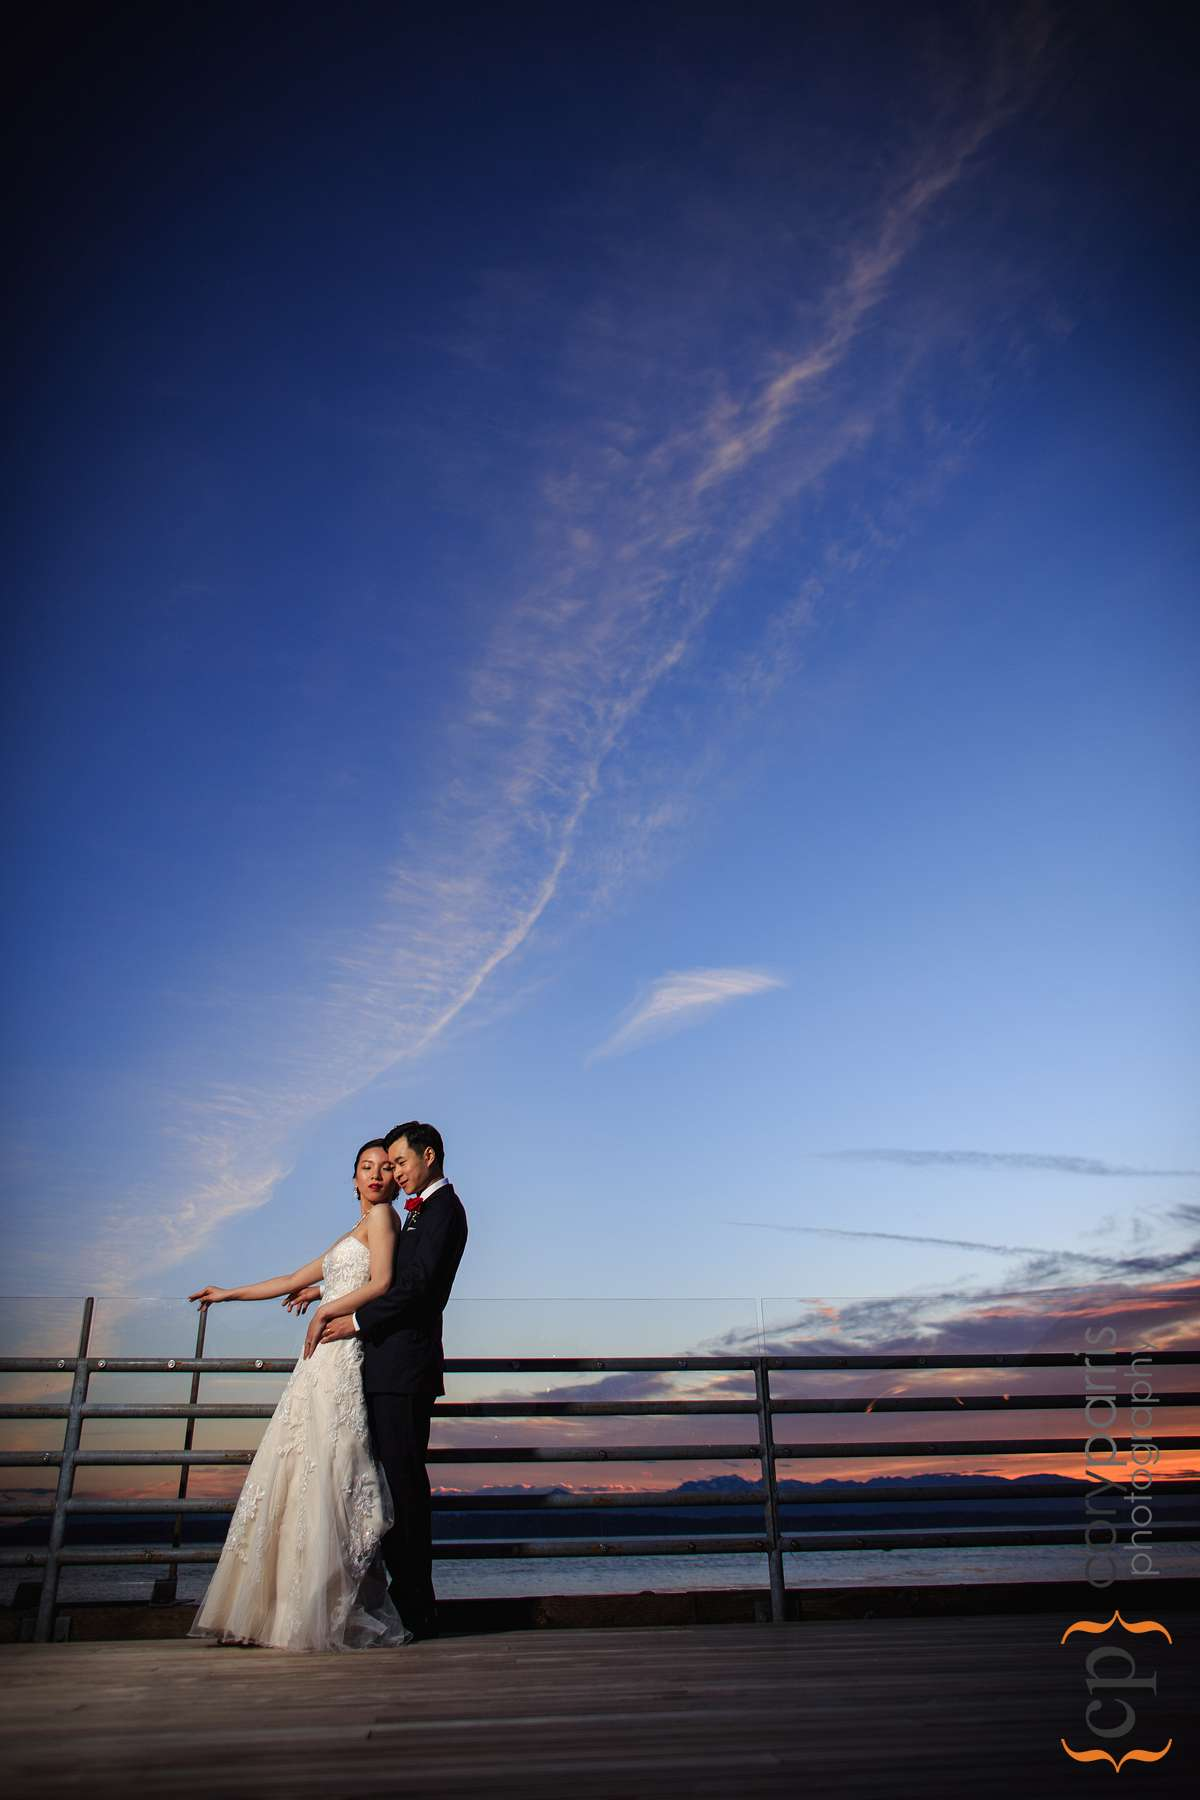 Sunset wedding photograph of Lily and Fu at Ray's Boathouse in Ballard.